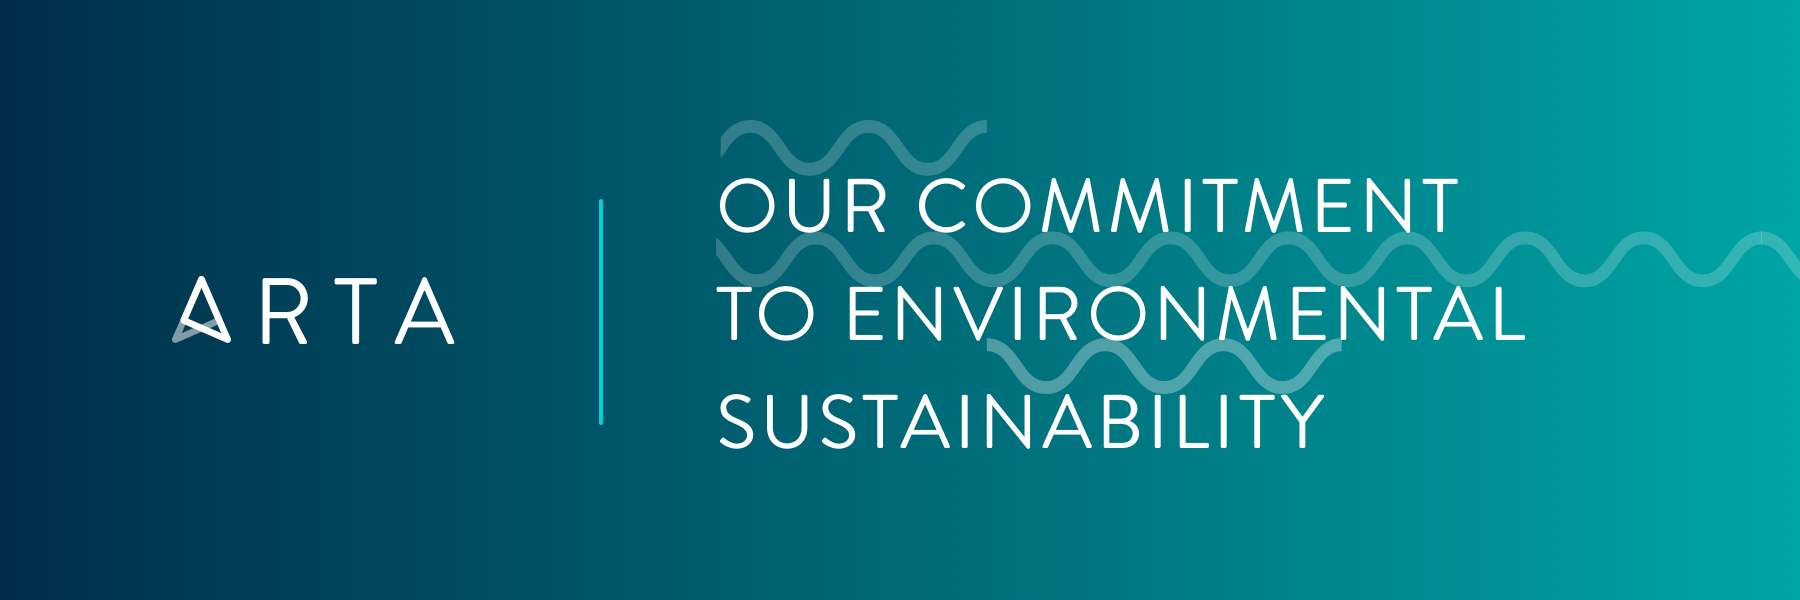 Our Commitment to Reducing Our Carbon Footprint and Promoting Sustainability